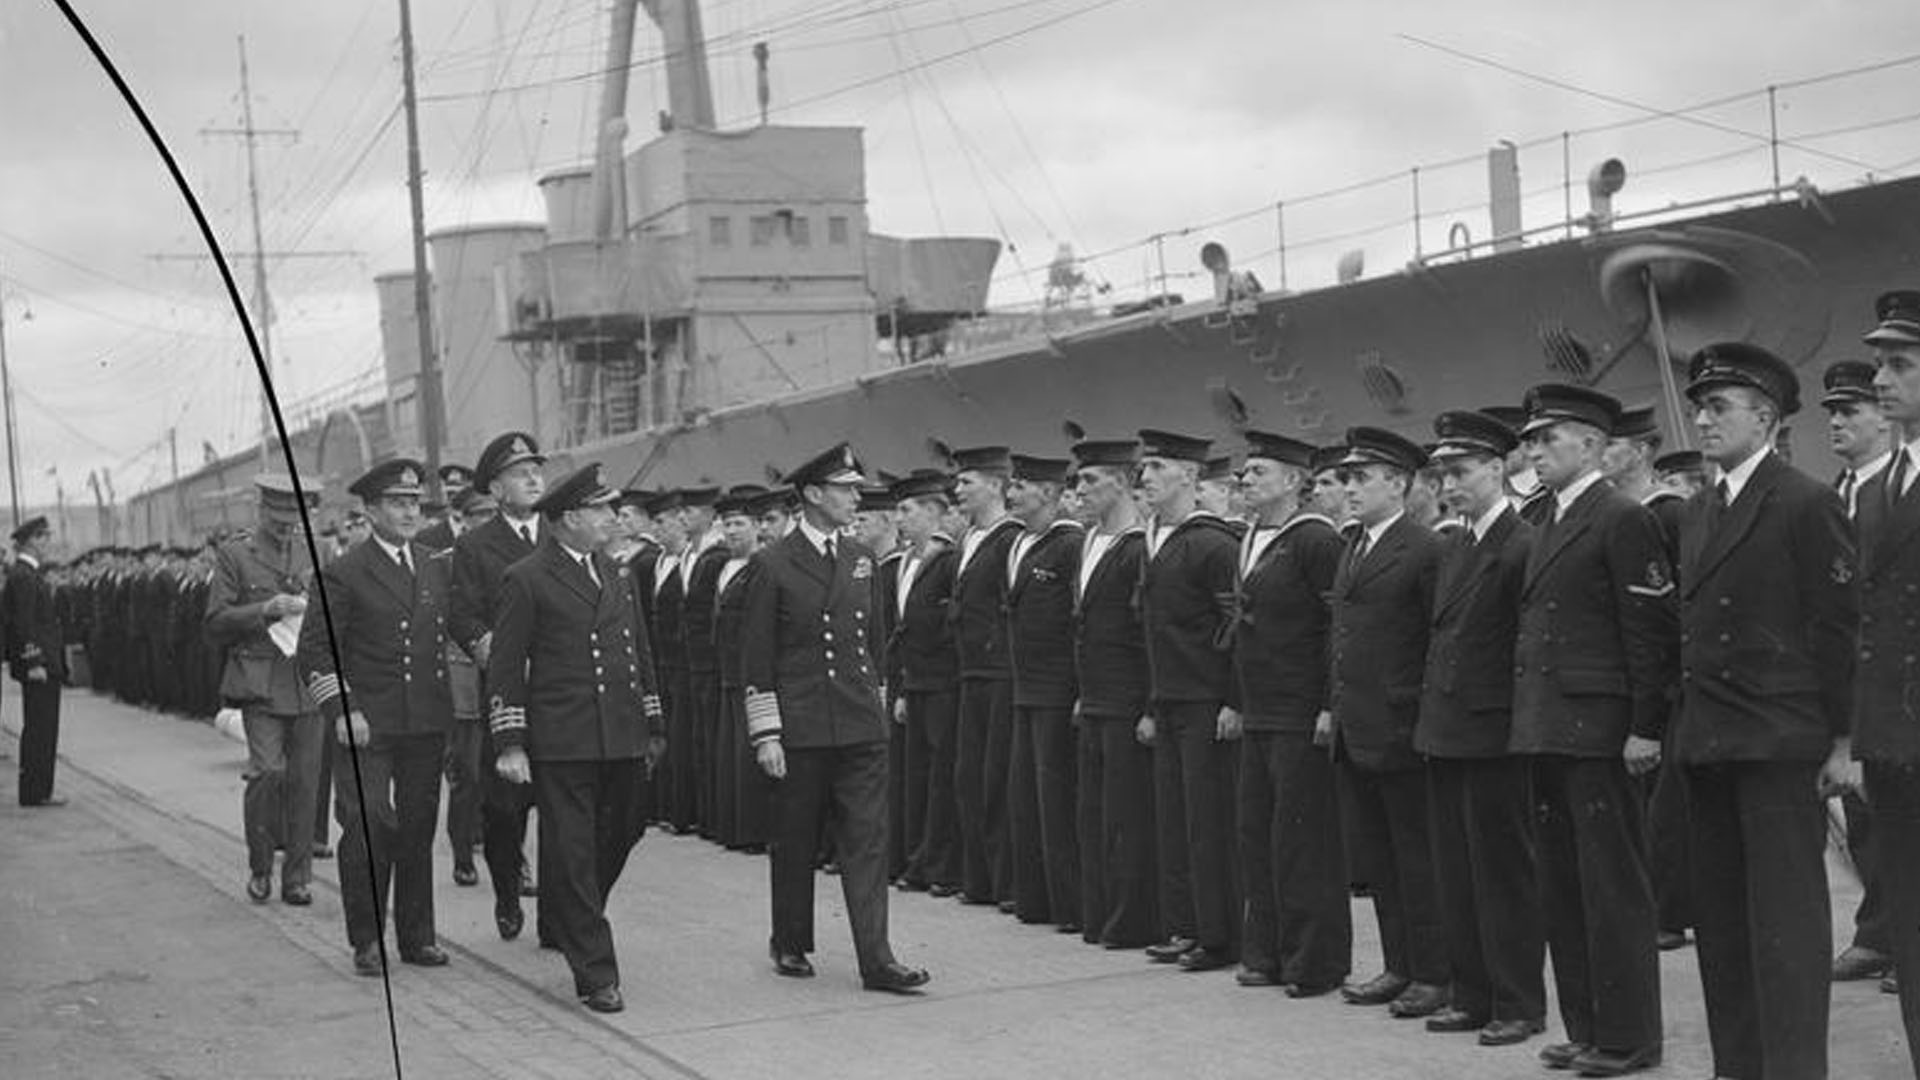 The King and Queen inspect H.M.S. Caroline